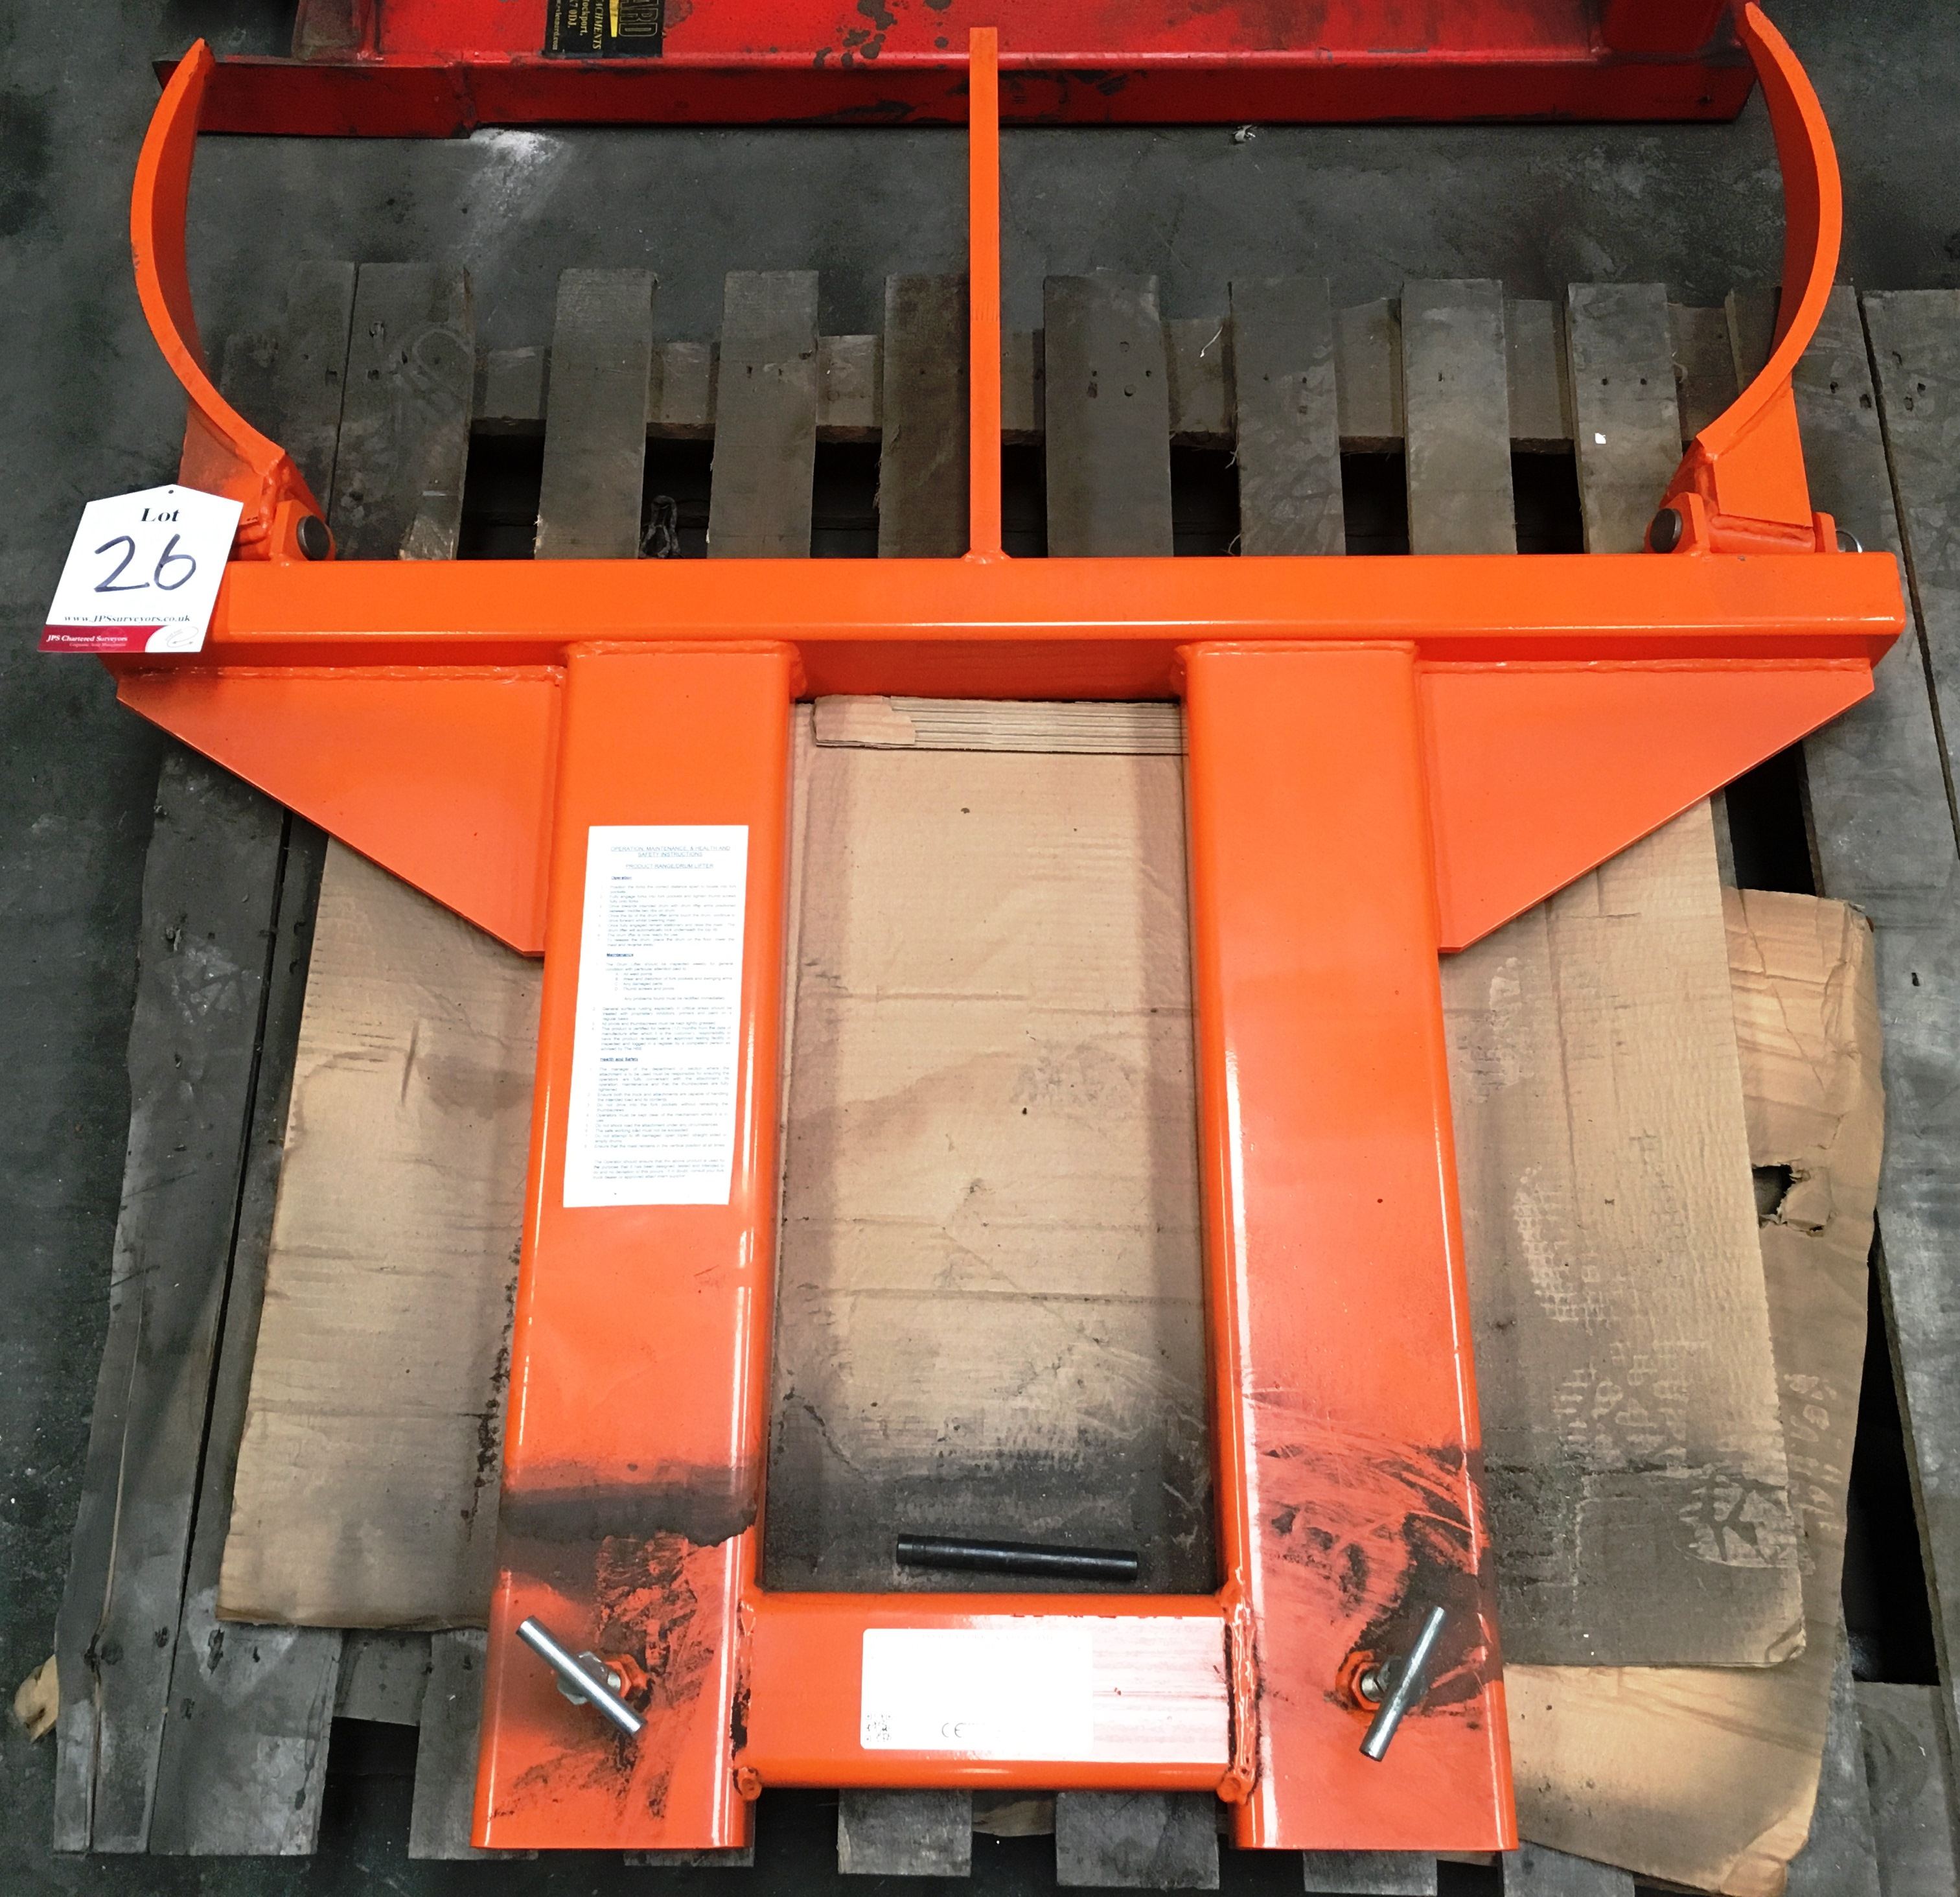 Lot 26 - Invicta IDL-2 Fork Mounted Dual Drum Lifter Attachment